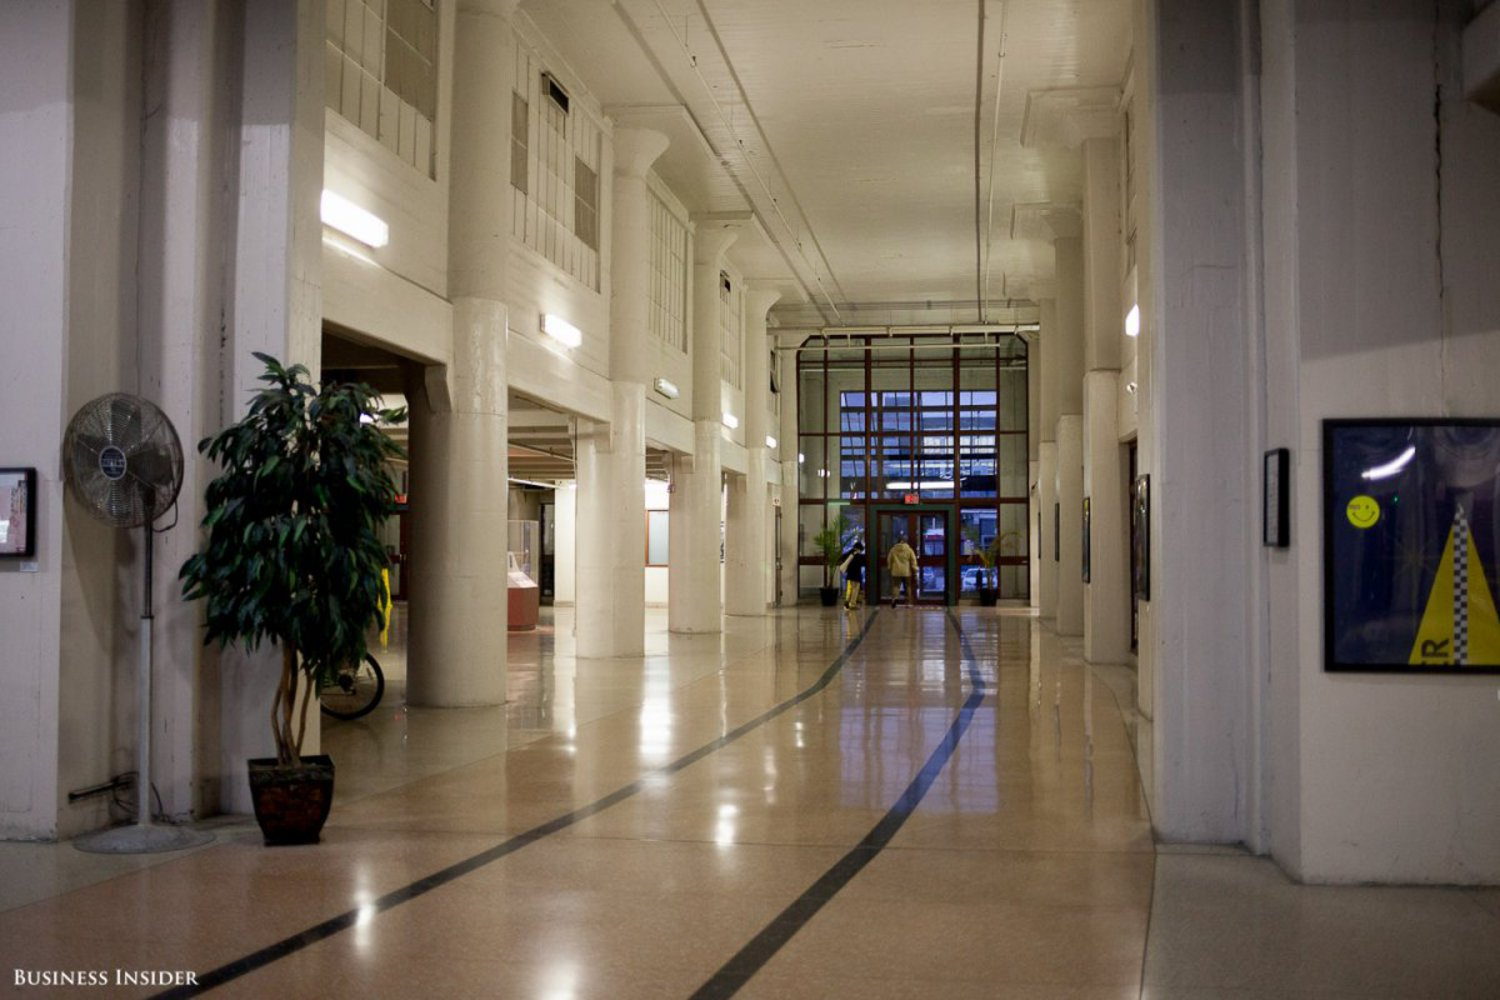 This is the lobby of the main building. The trains used to run directly through the building, as symbolized by the lines on the floor.